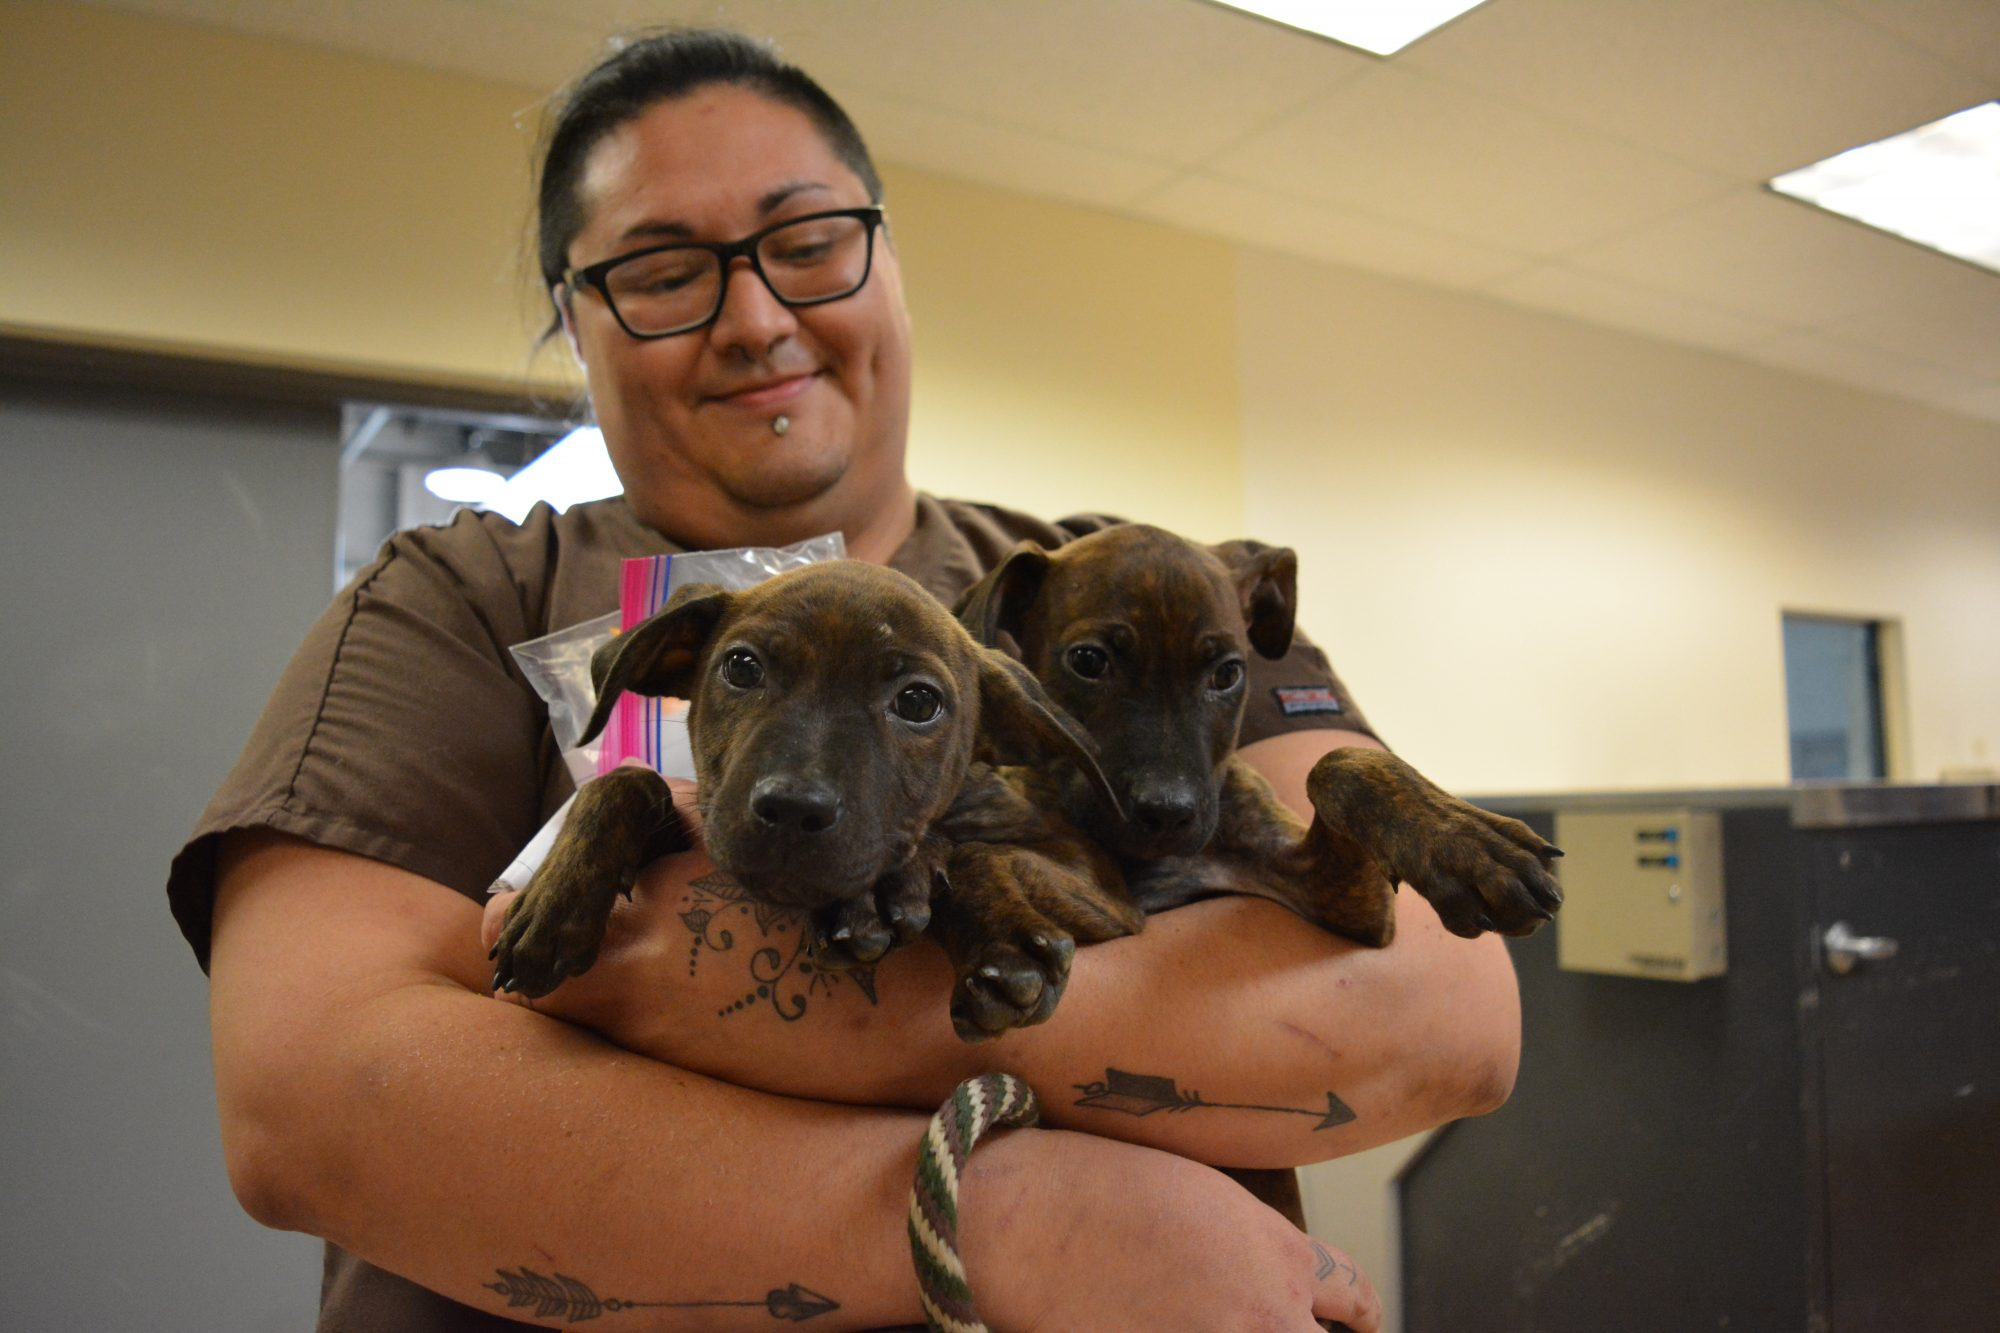 Puppies from Houston arrive at HSMO